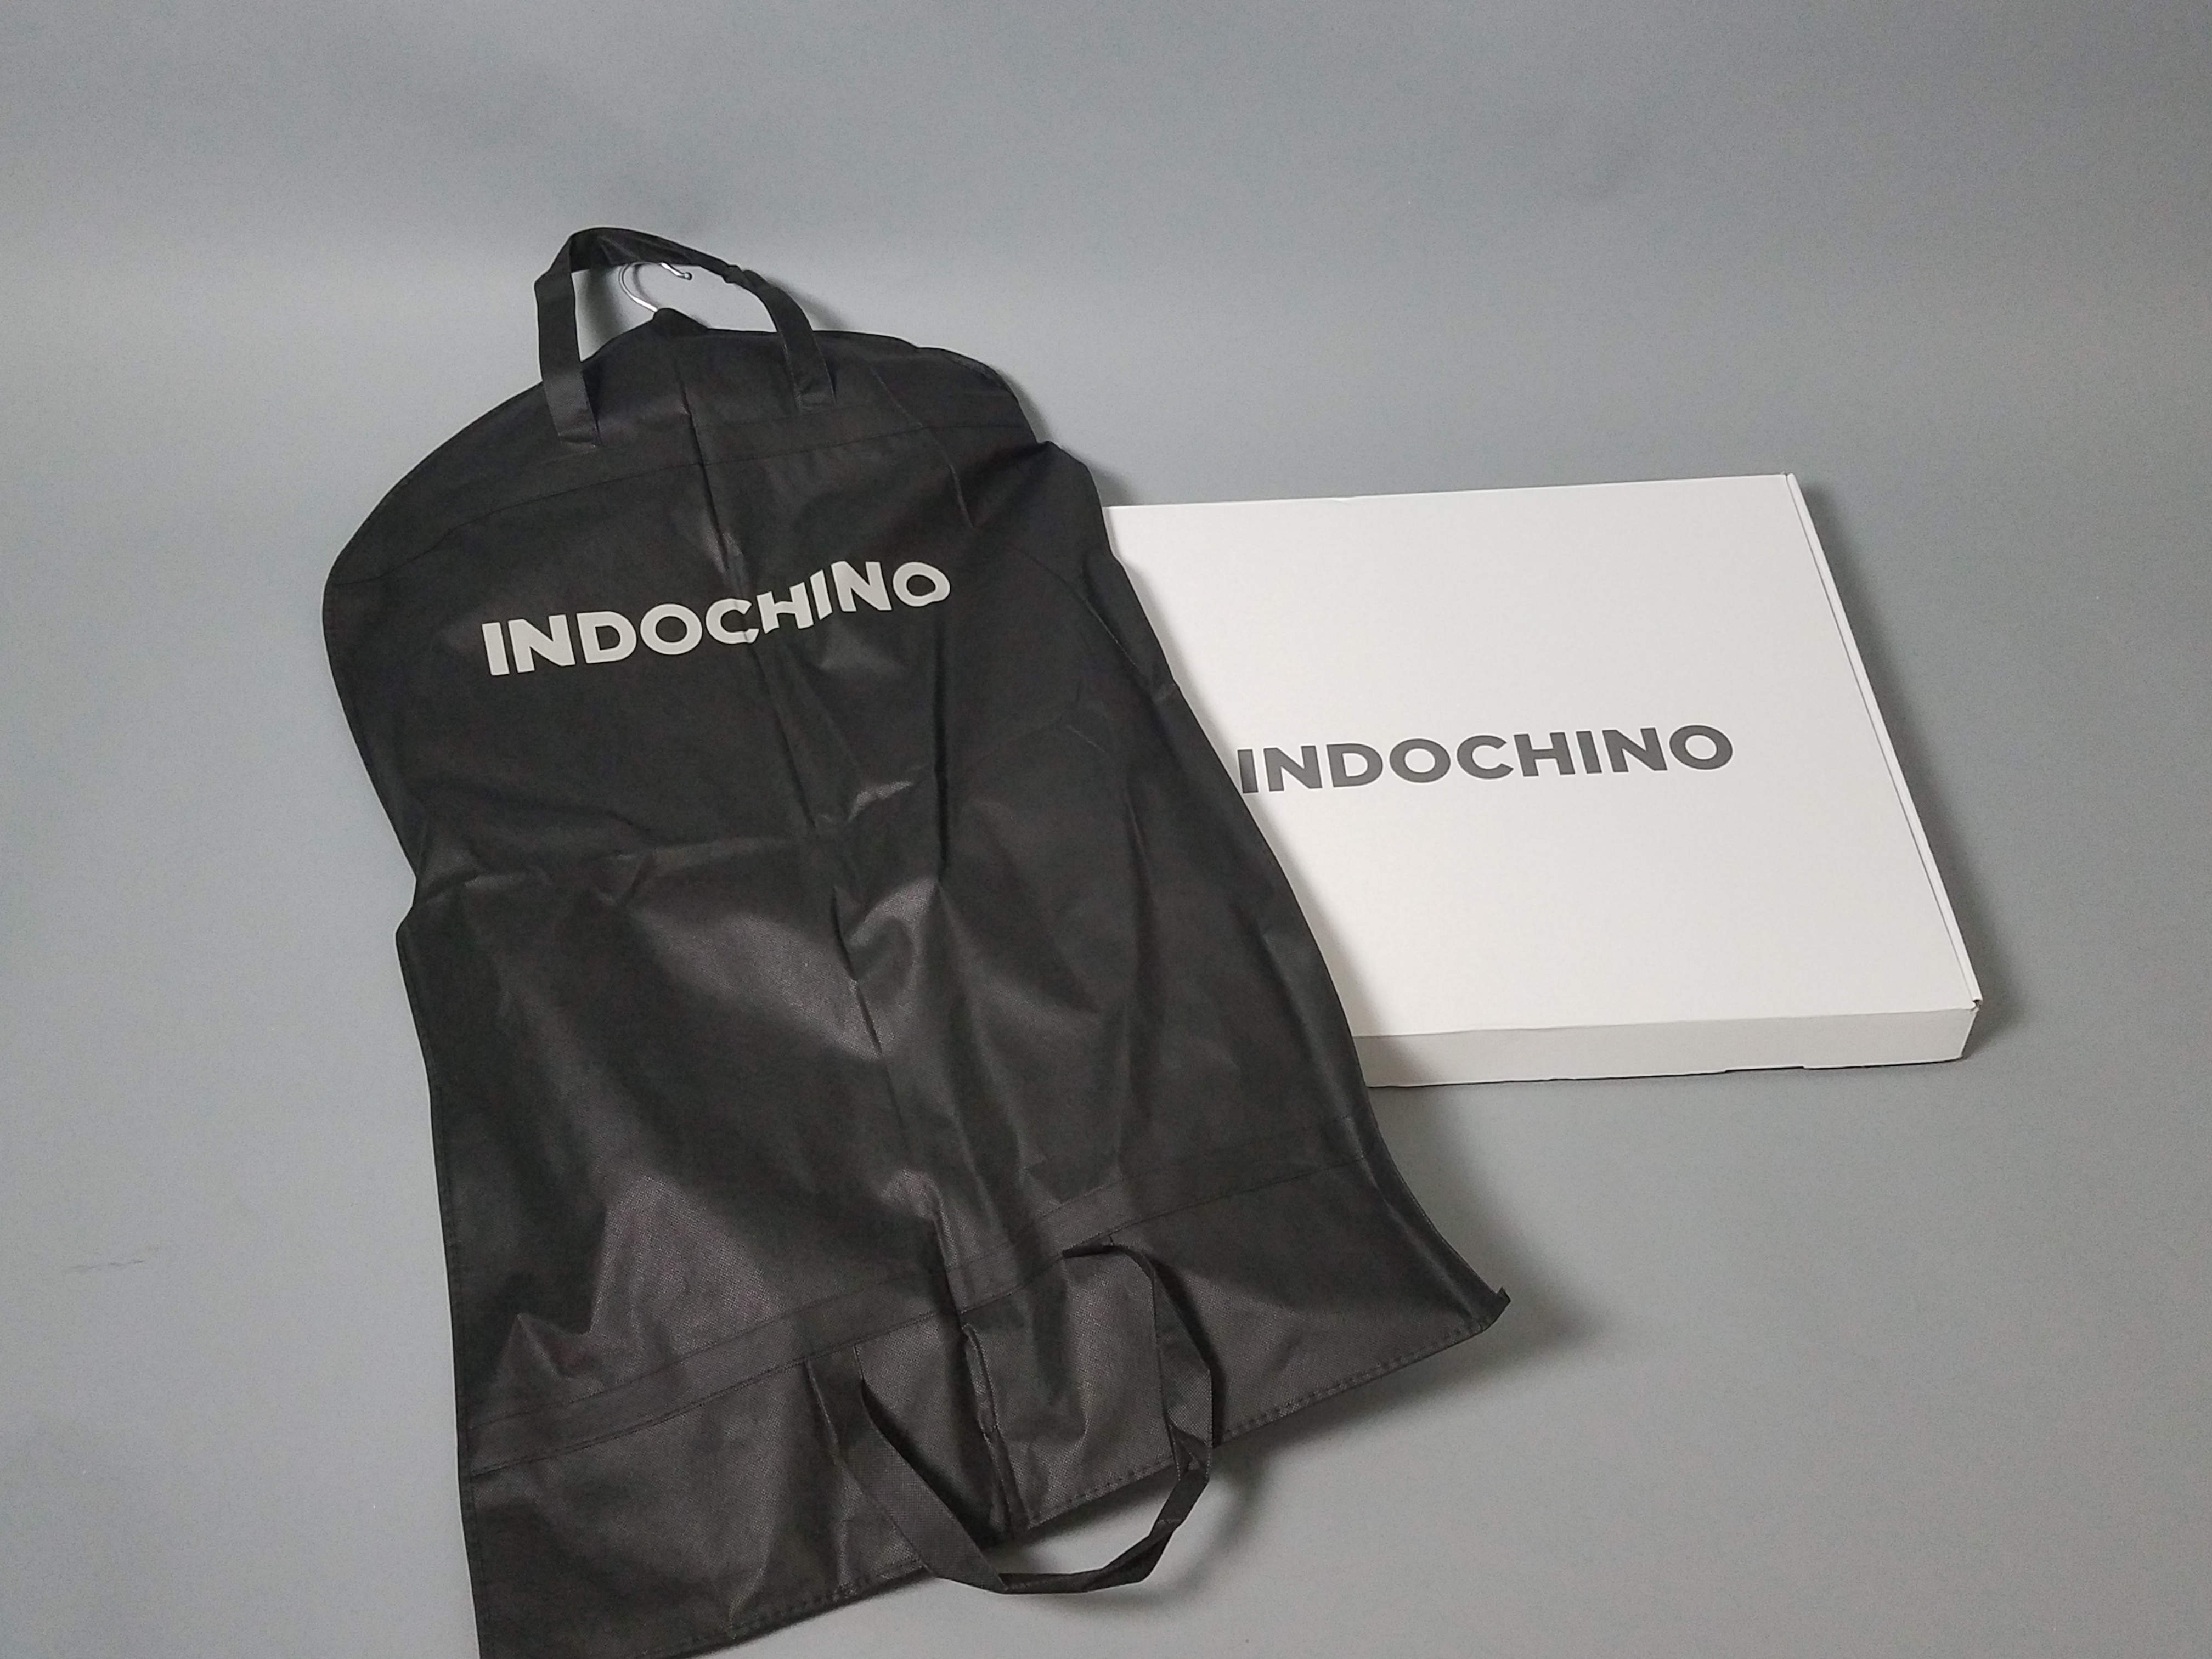 Indochino Suit Box & Bag | ShortGuyCentral